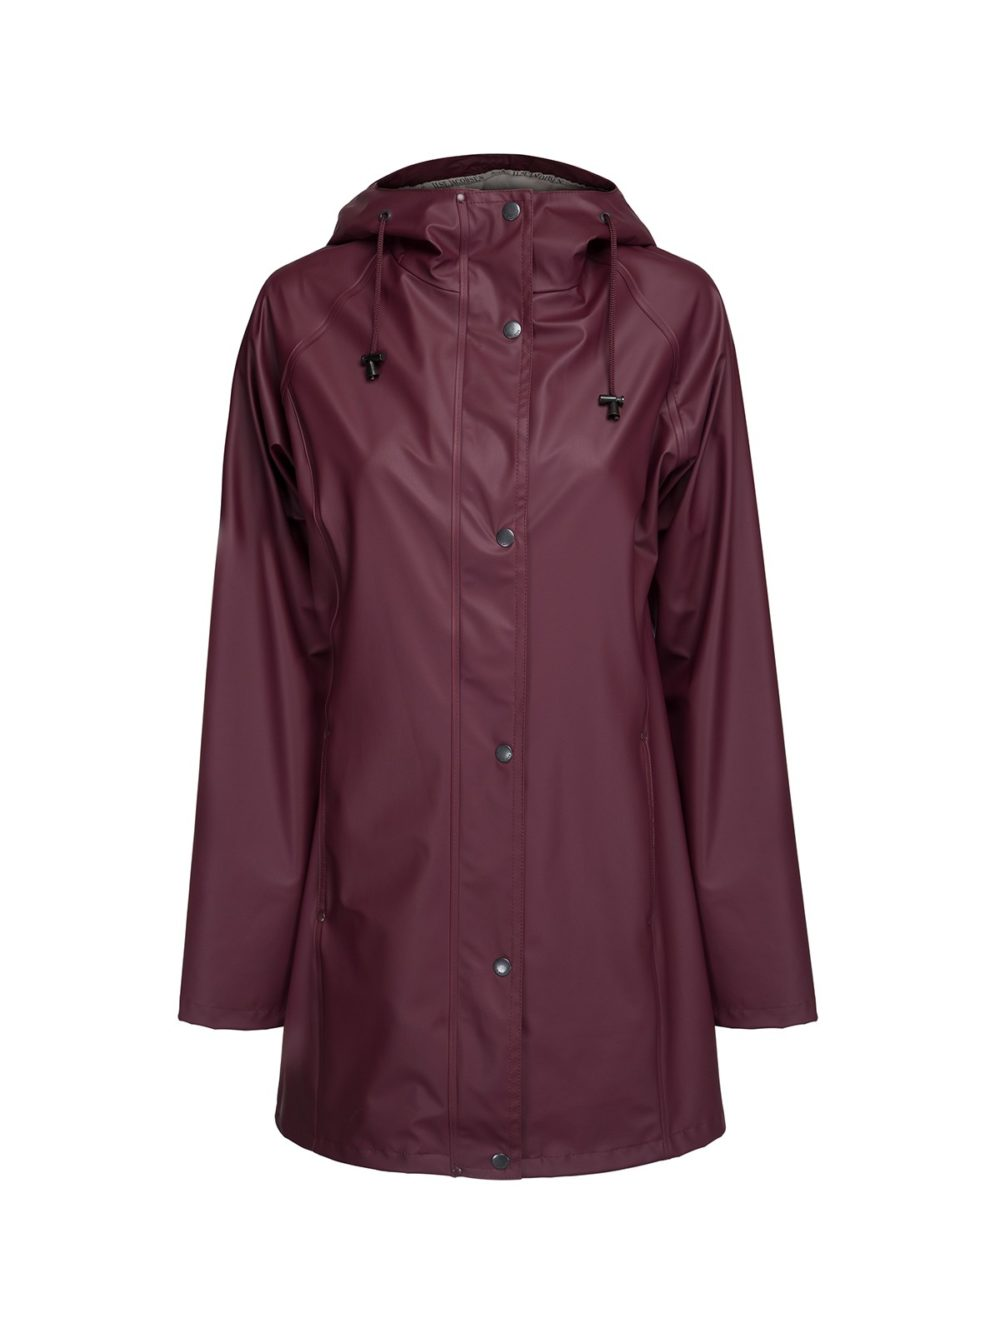 Raincoat 87 Ilse Jacobsen Women's Clothing